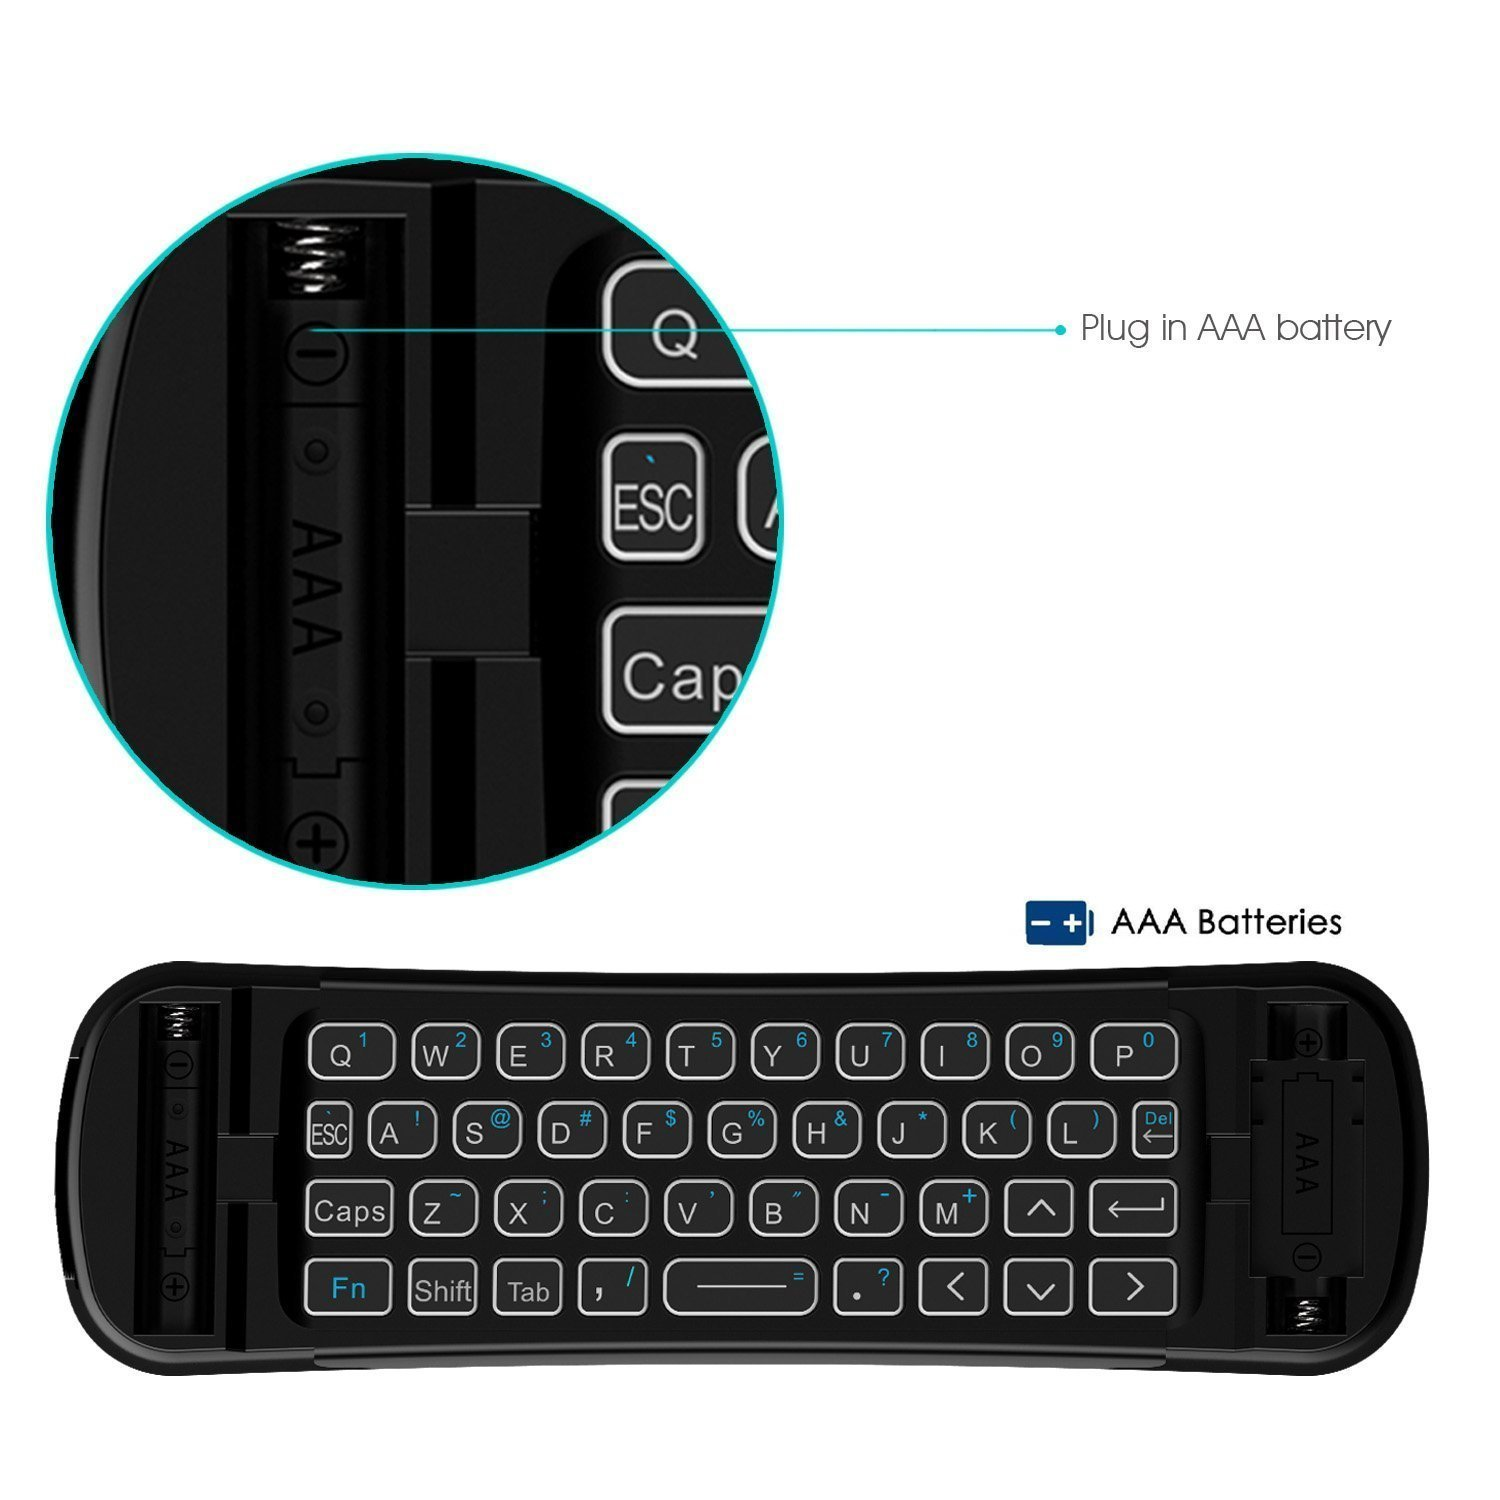 Rii Backlit Fly Mouse 2.4G MX6 Multifunctional Wireless Mini Keyboard and Remote Control With Microphone For KODI,Raspberry Pi 2,3, Android TV/Box/Mini PC,IPTV,HTPC,Android,Windows,MAC by Rii (Image #6)